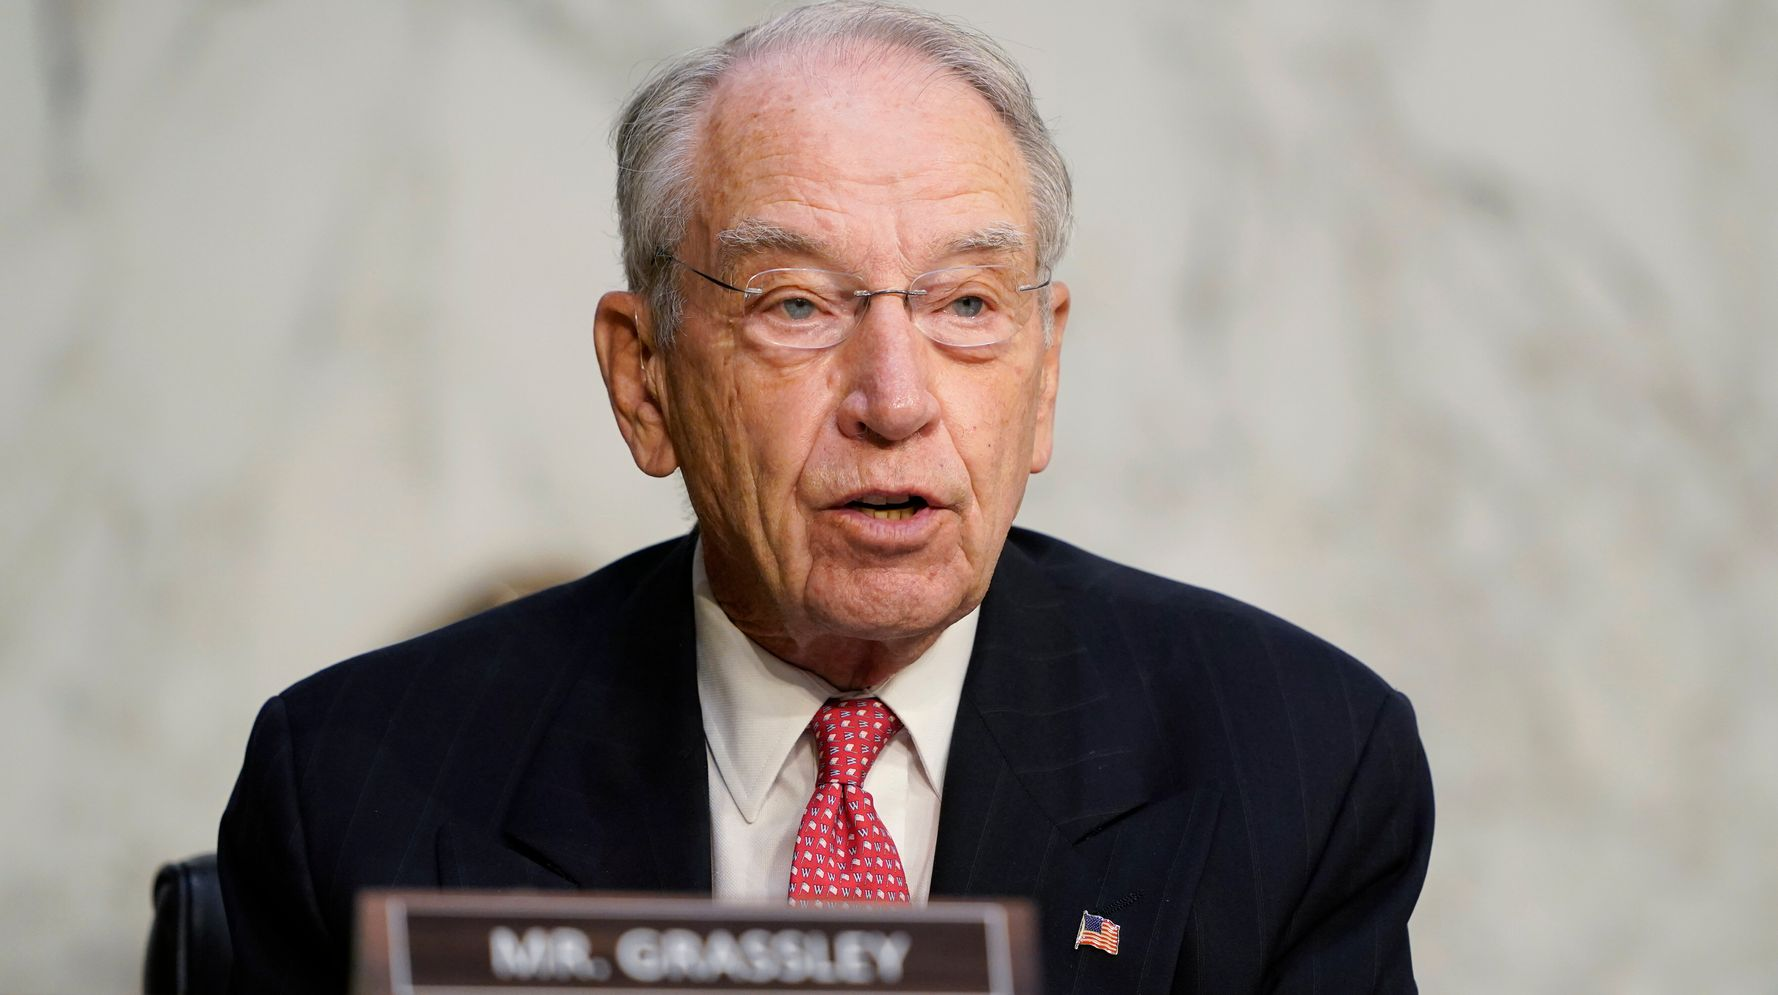 GOP Sen. Chuck Grassley Tests Positive For COVID-19